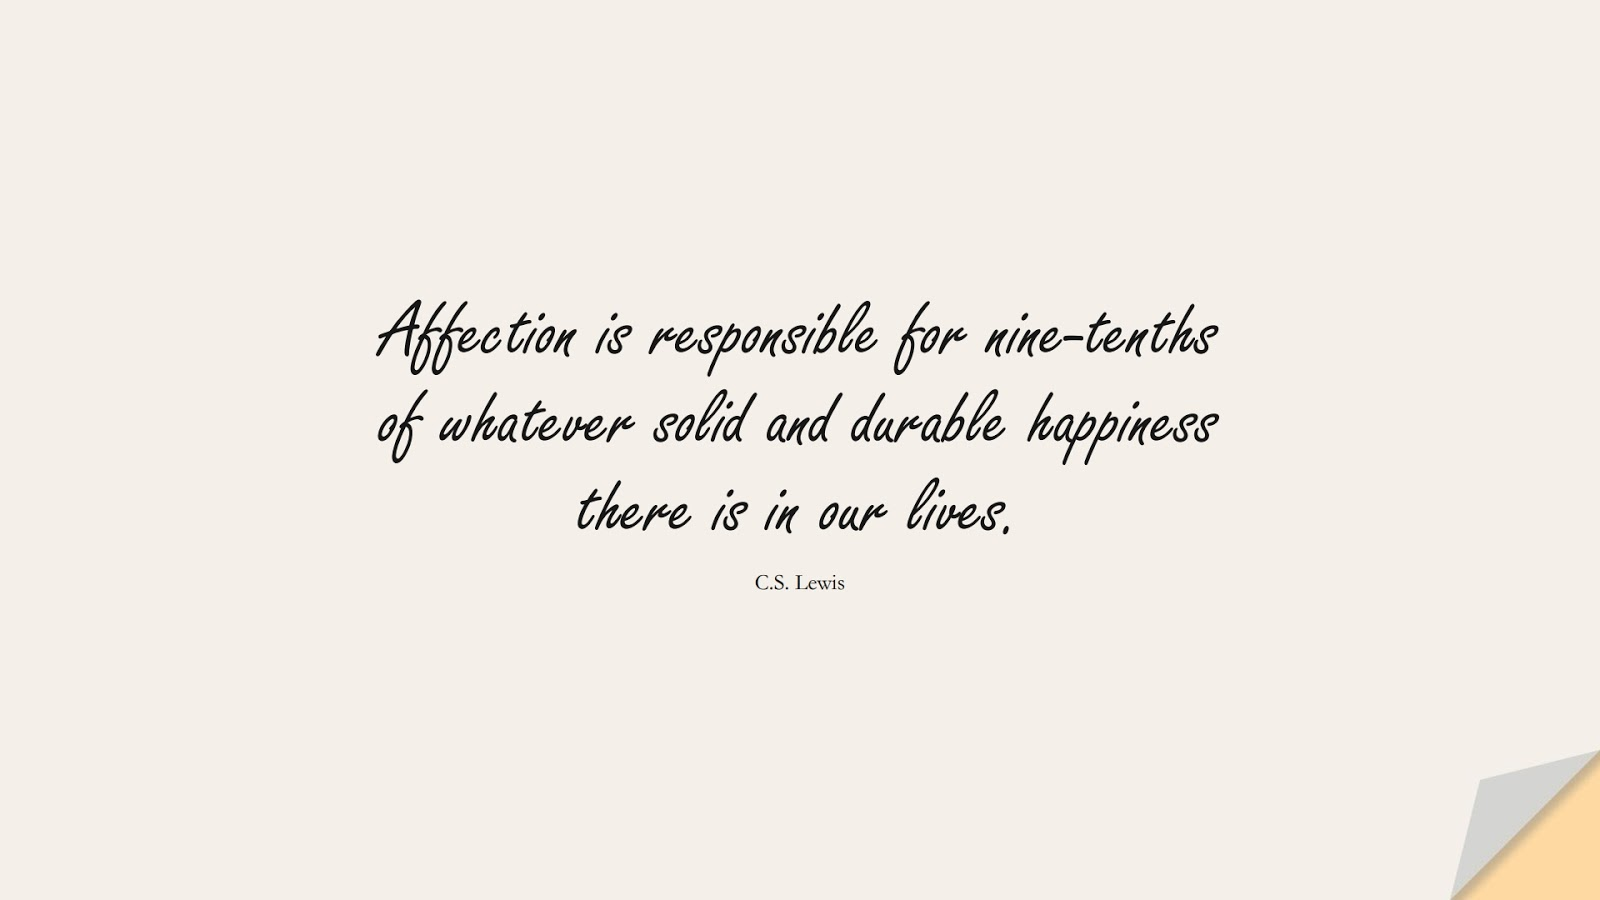 Affection is responsible for nine-tenths of whatever solid and durable happiness there is in our lives. (C.S. Lewis);  #LoveQuotes